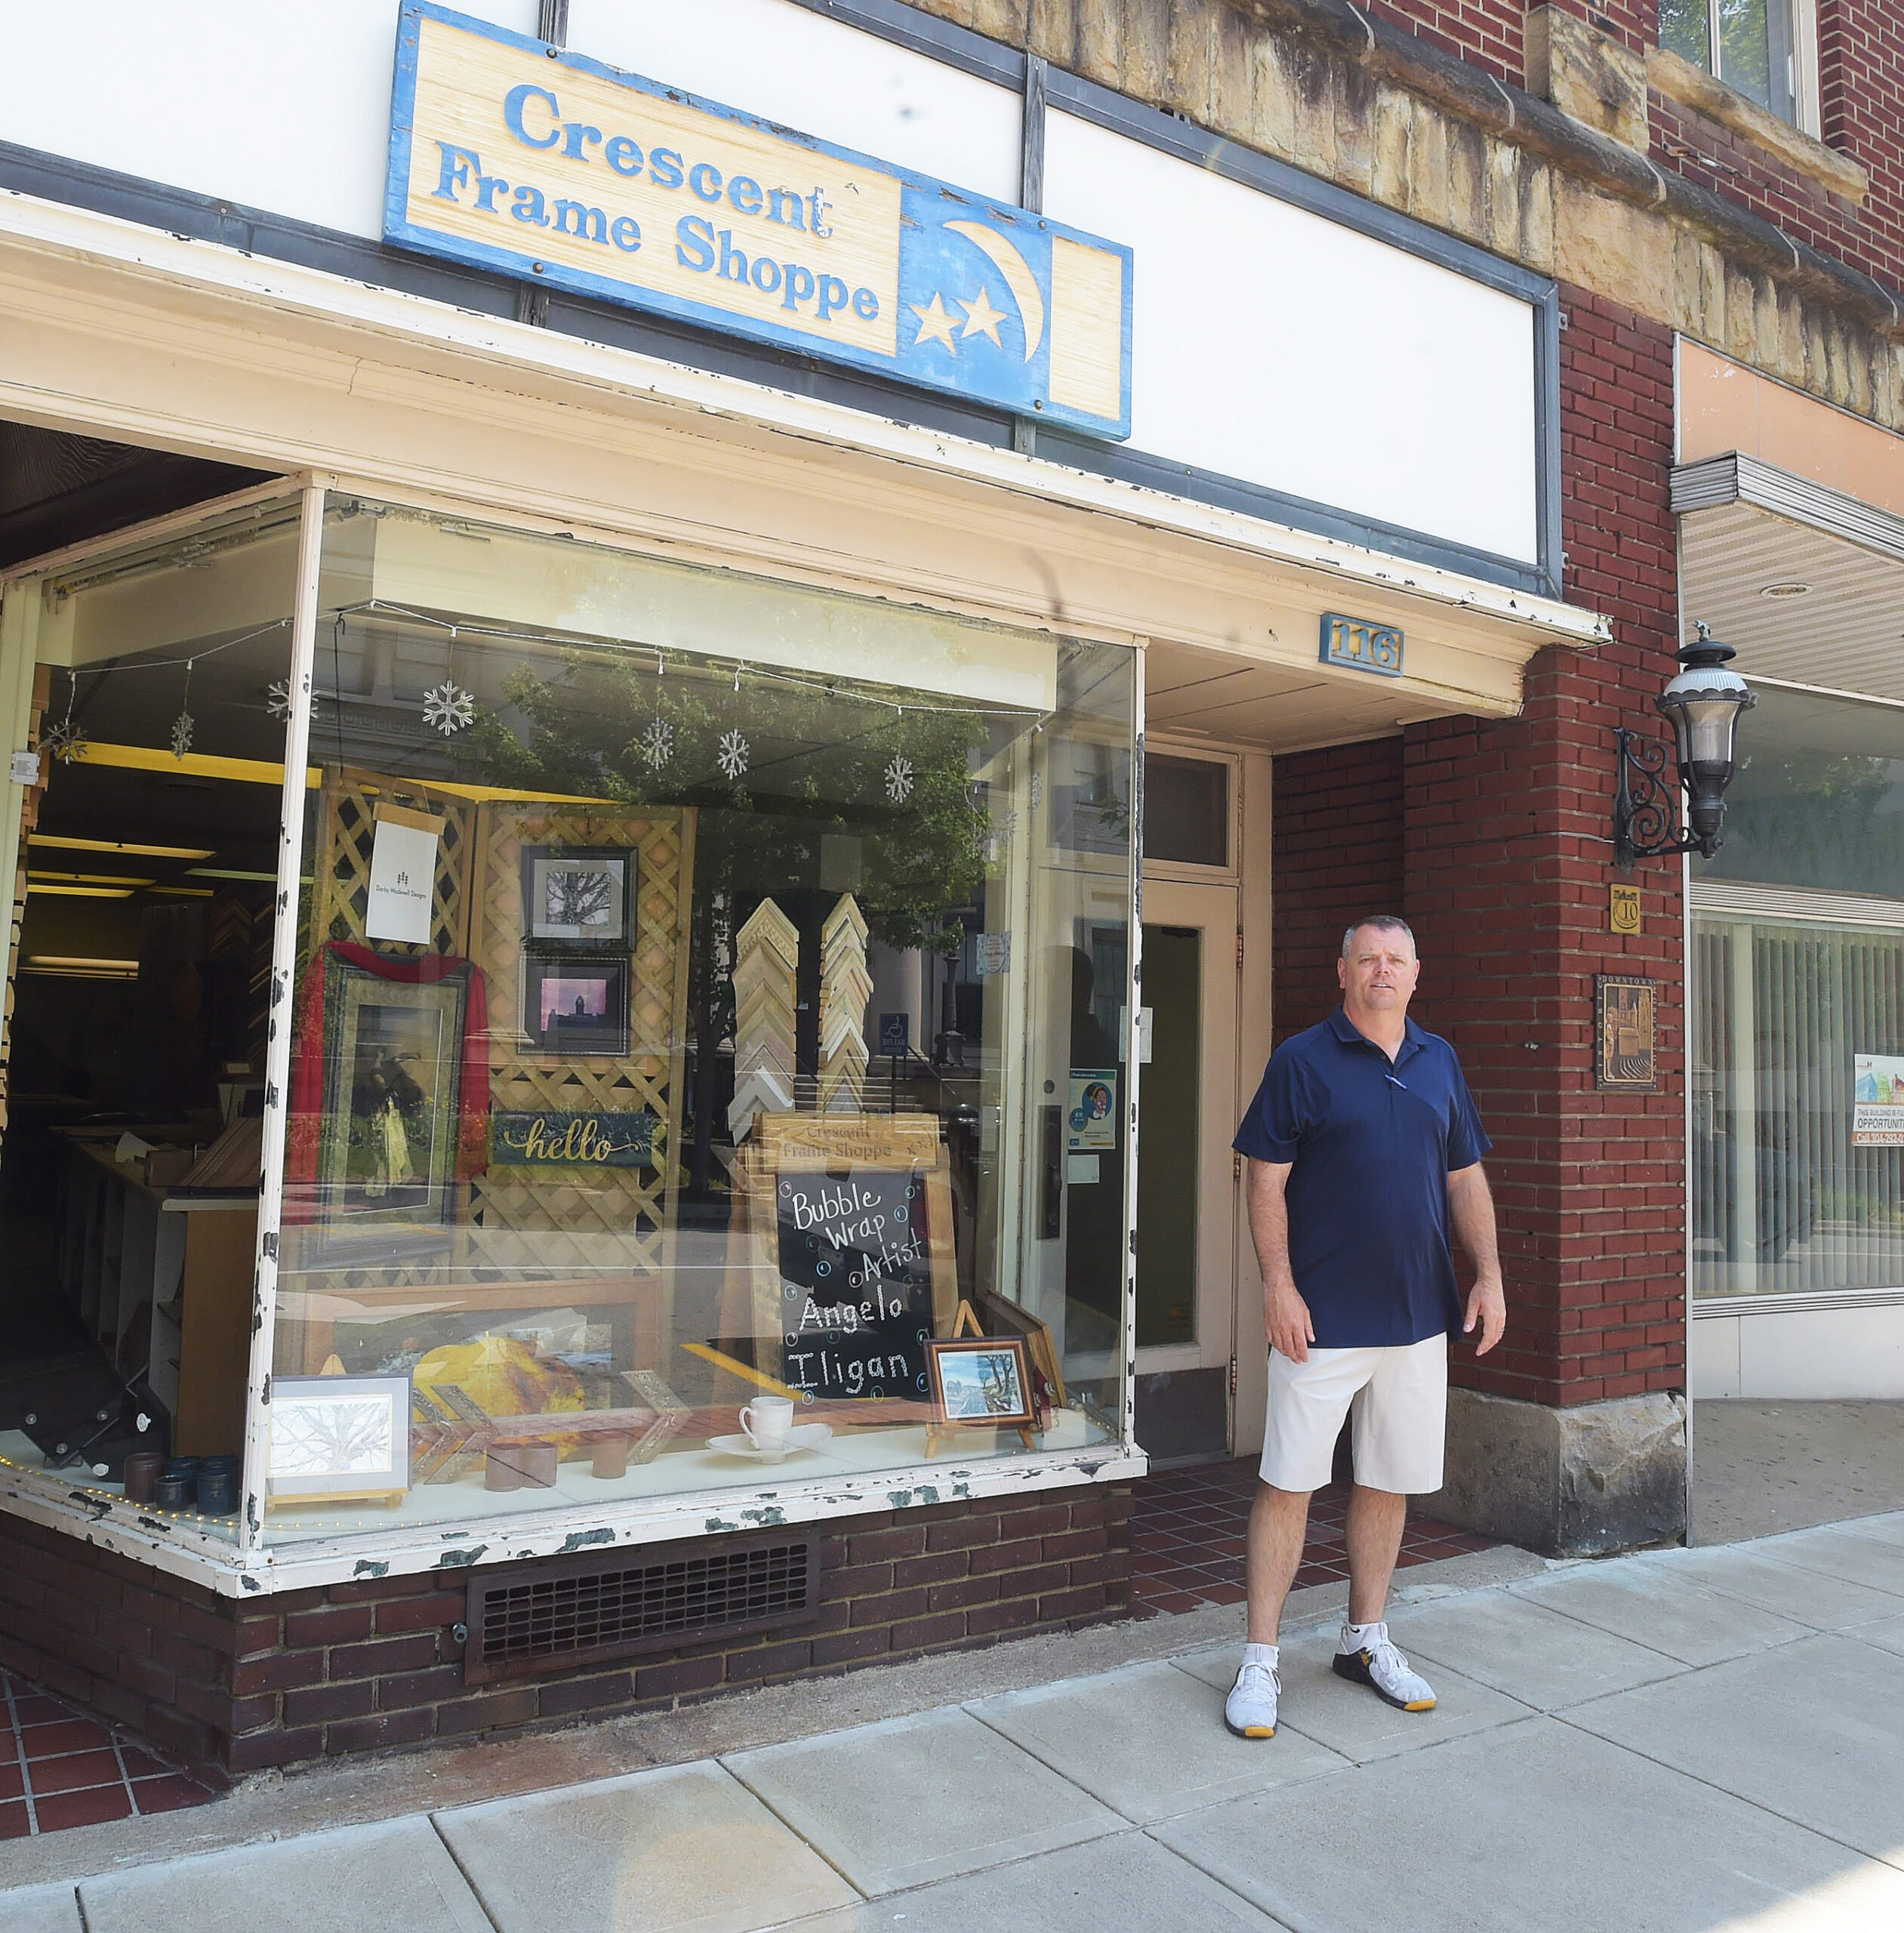 Mike Quick, owner, in front of Crescent Frame Shoppe